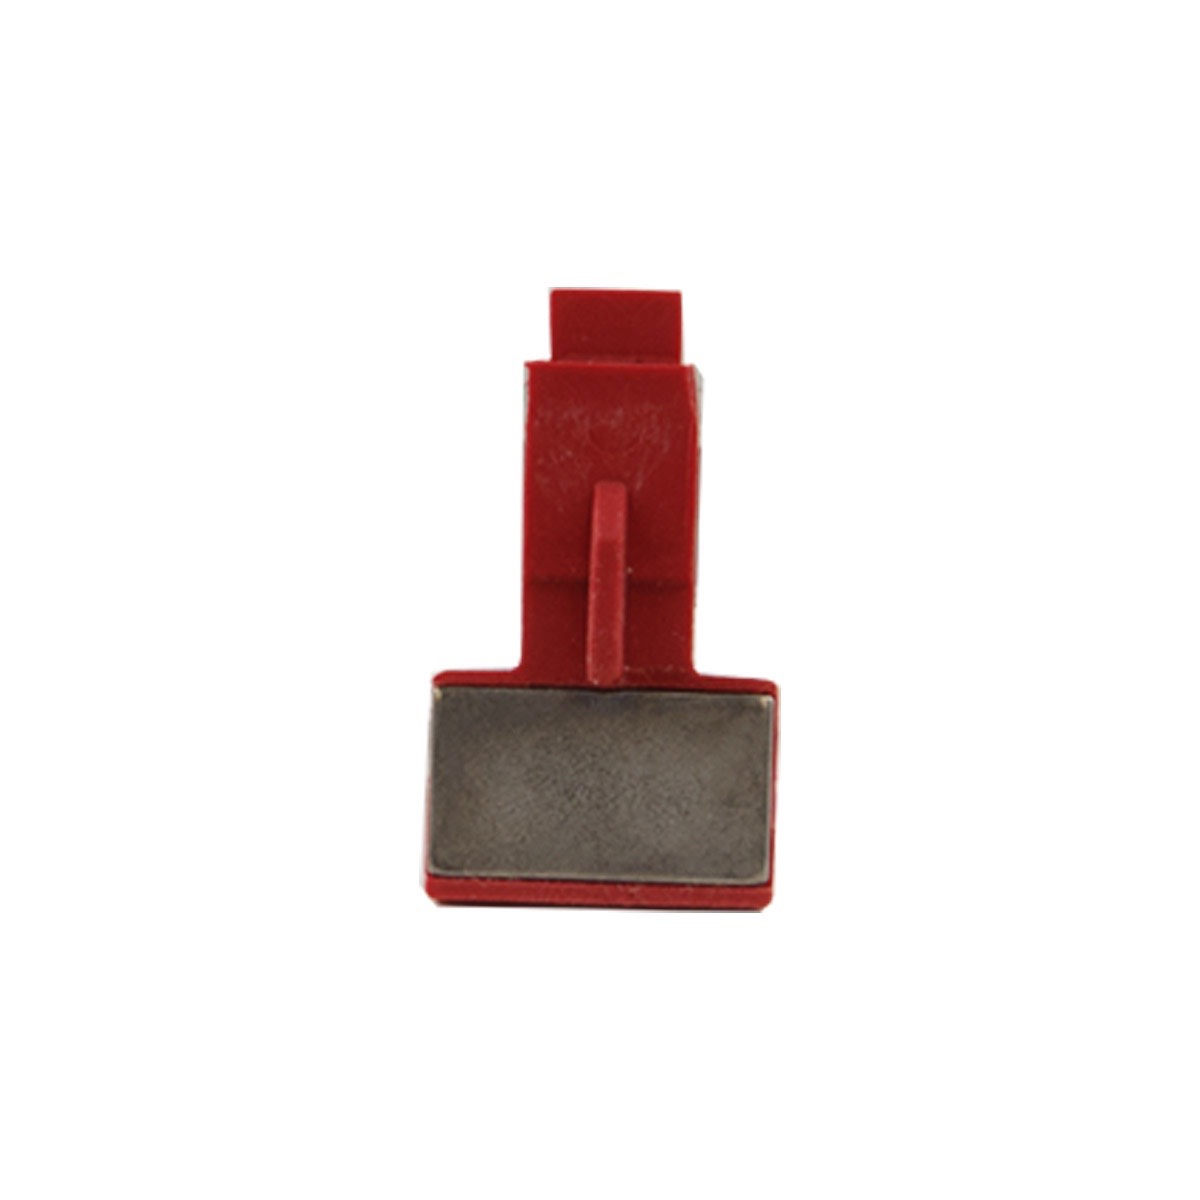 8008-0036, Pressure Shaft Block